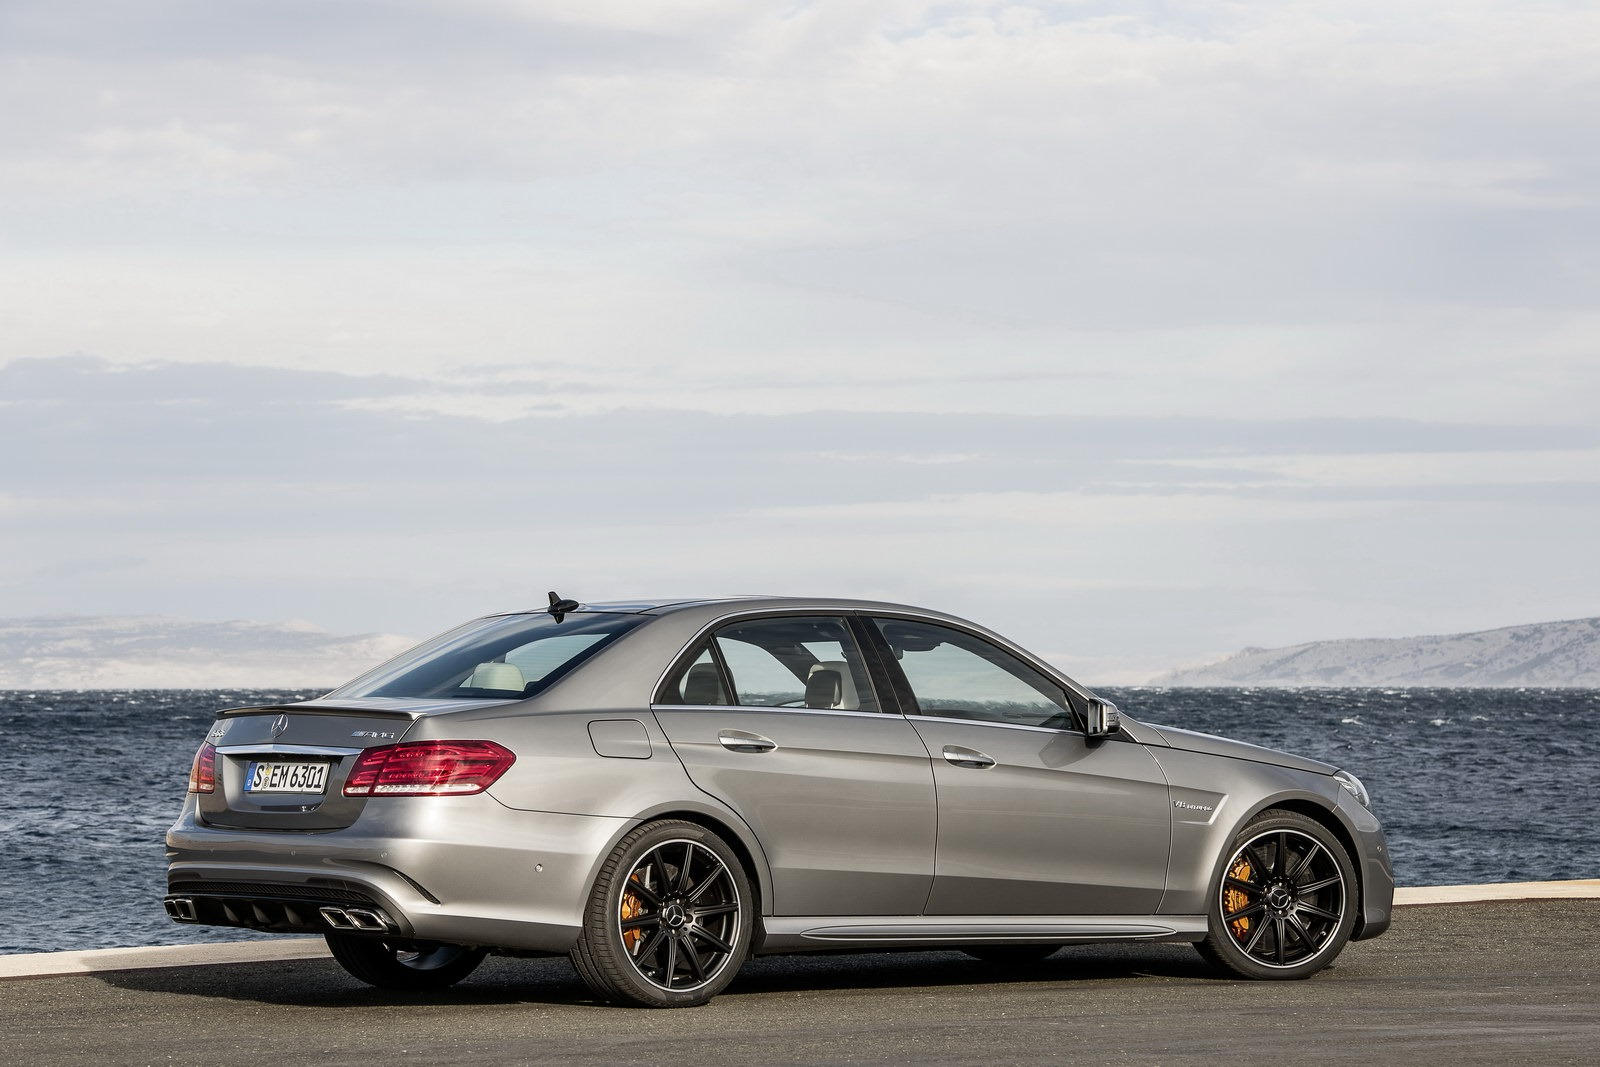 Mercedes E63 AMG Gets New Look, More Power - Photo Gallery ...